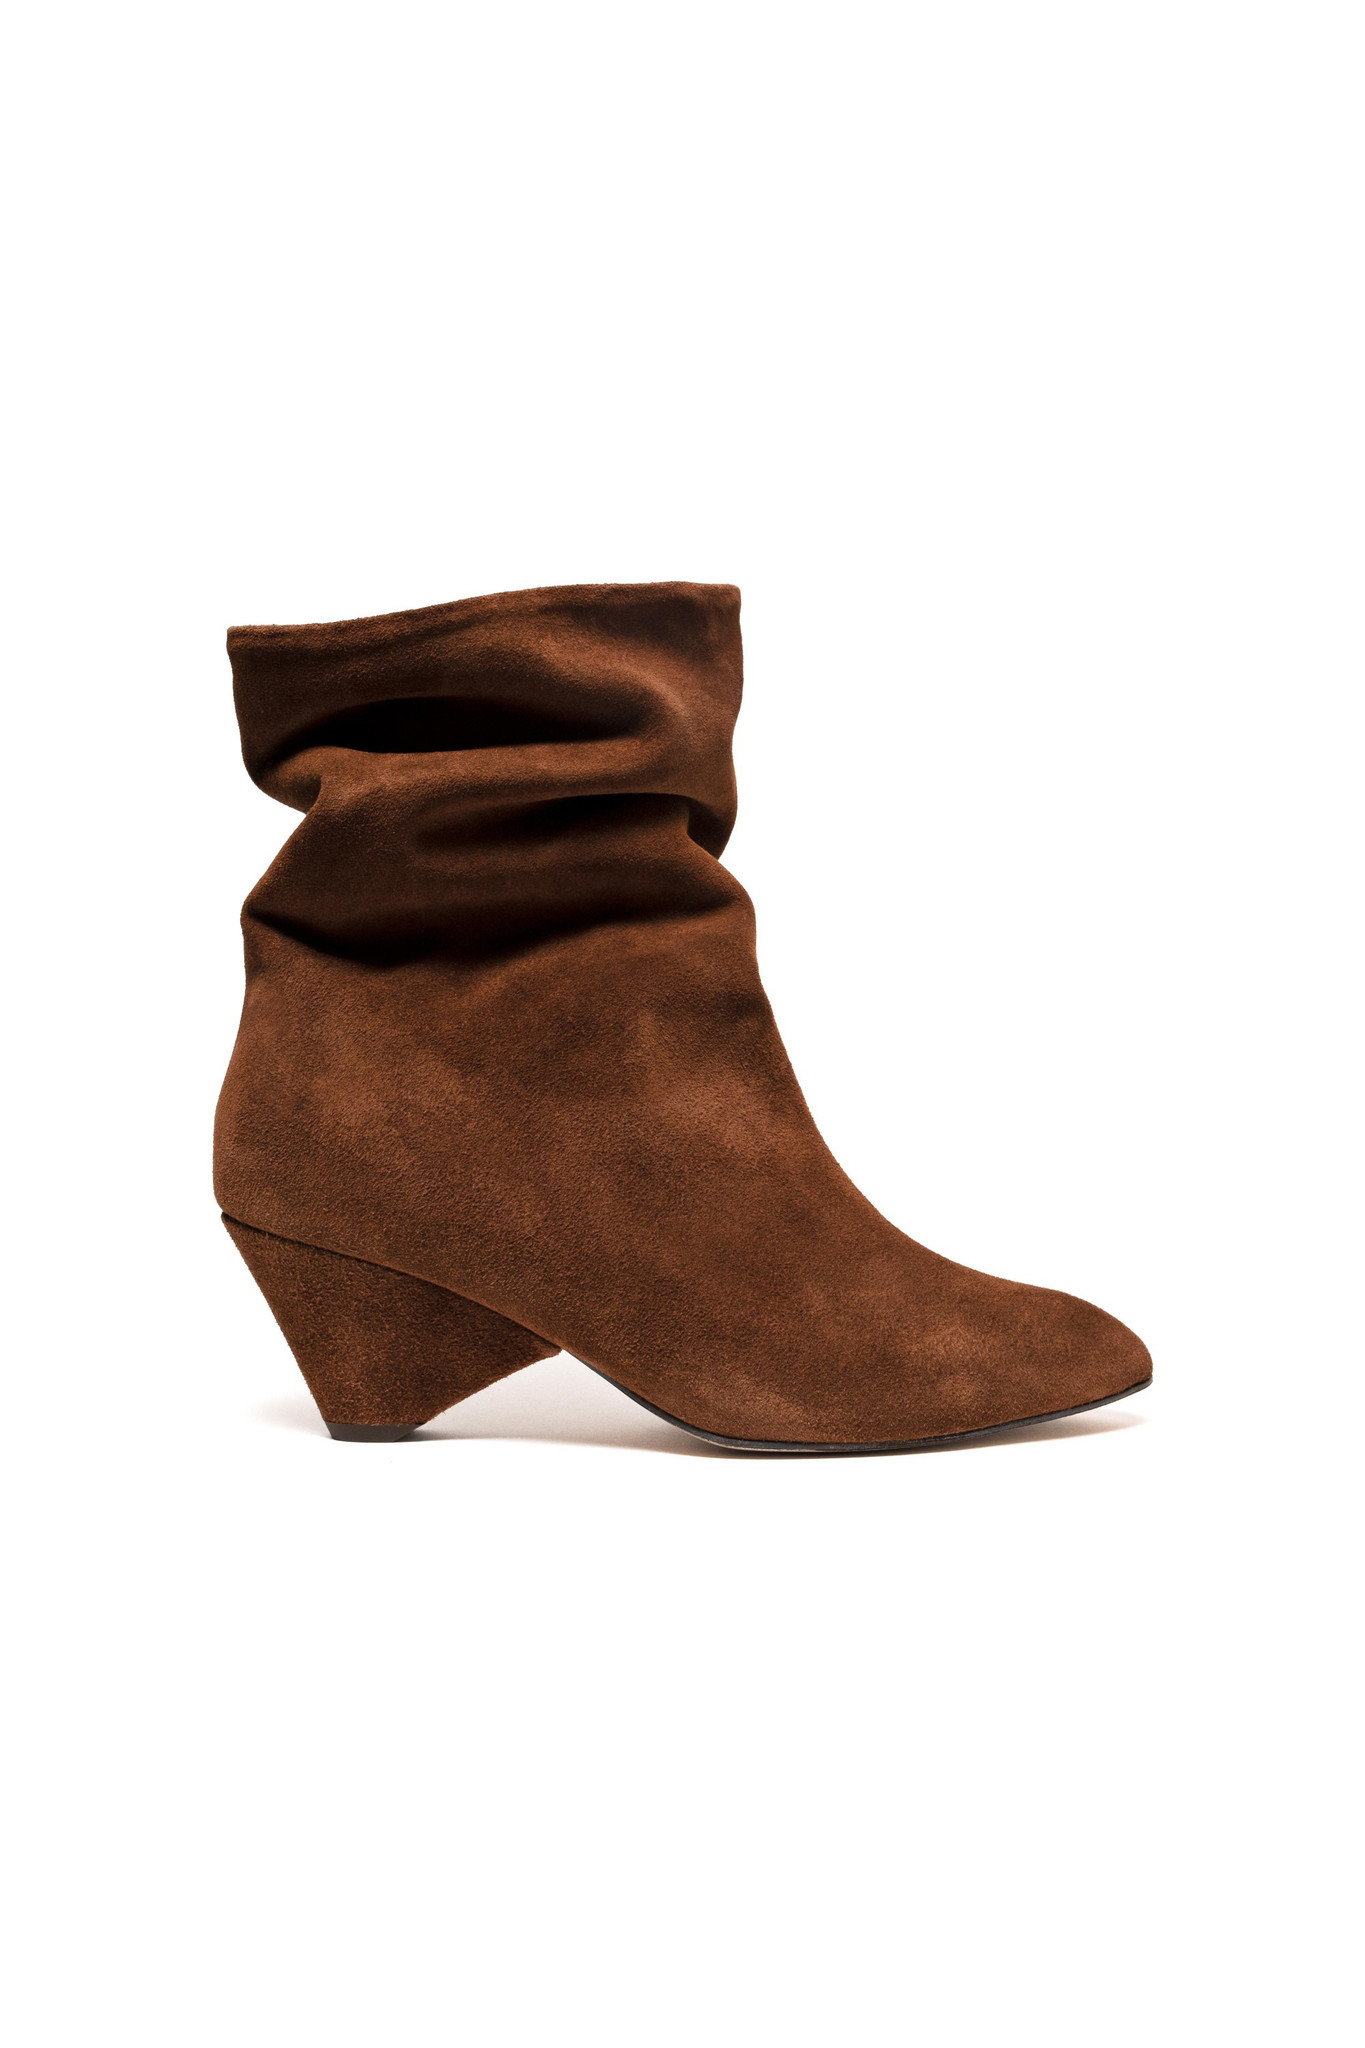 Vully 50 Triangle Calf Suede Boot - Chestnut-1